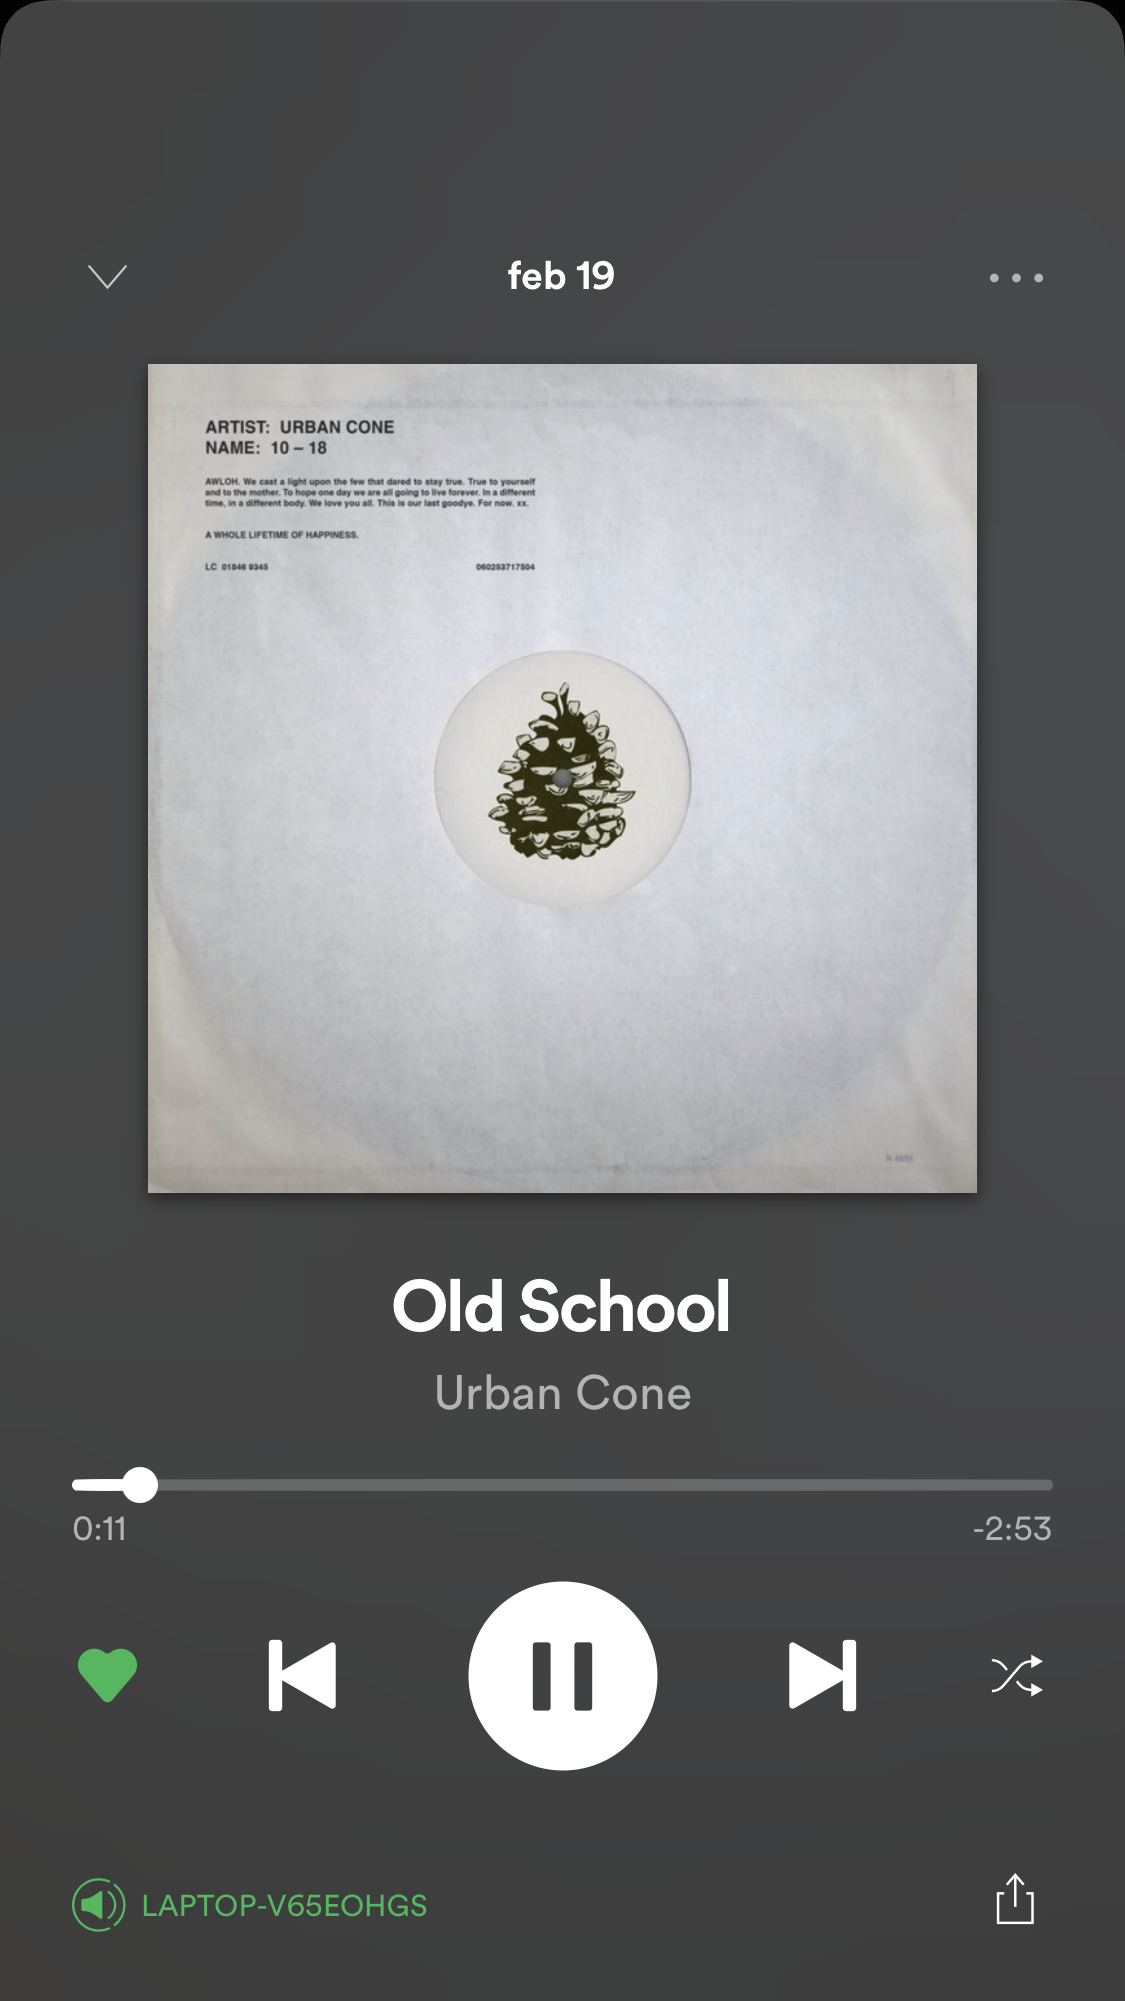 Old School Urban Cone Juliana Perez105 On Spotify Youtube Videos Music Songs Song Playlist Mood Songs